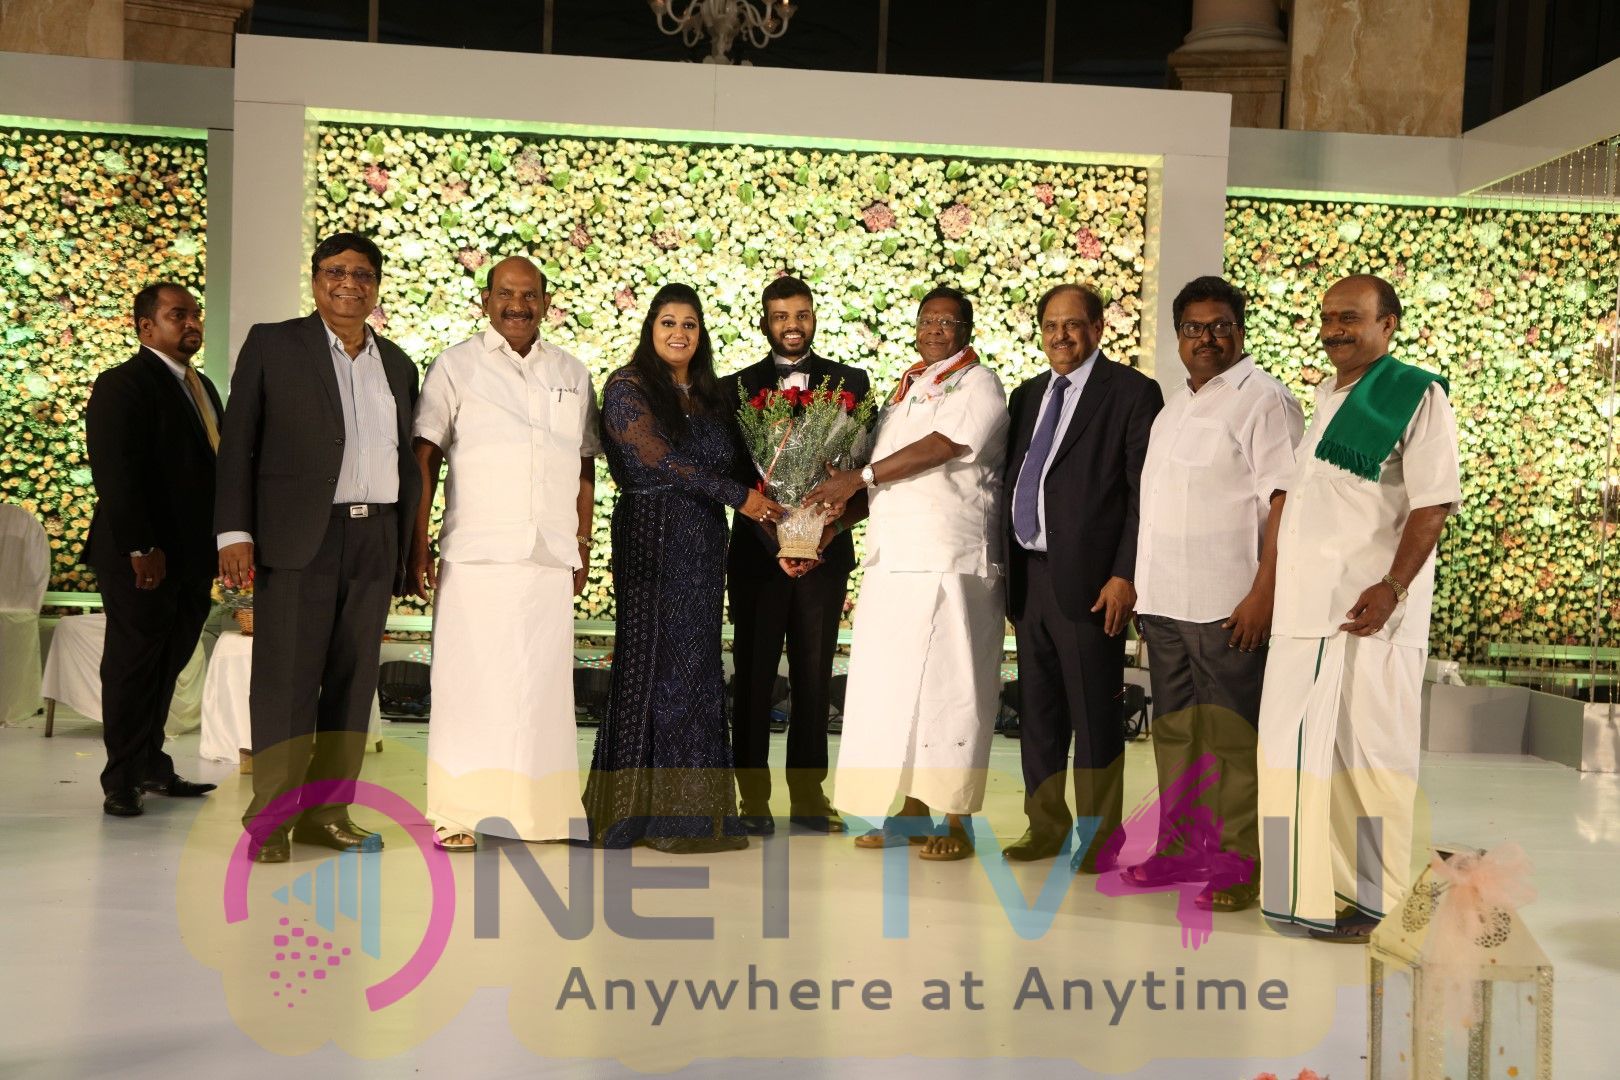 Le Meridien Hotel Chairman G.Periasamy Daughter Anandhi Wedding Reception